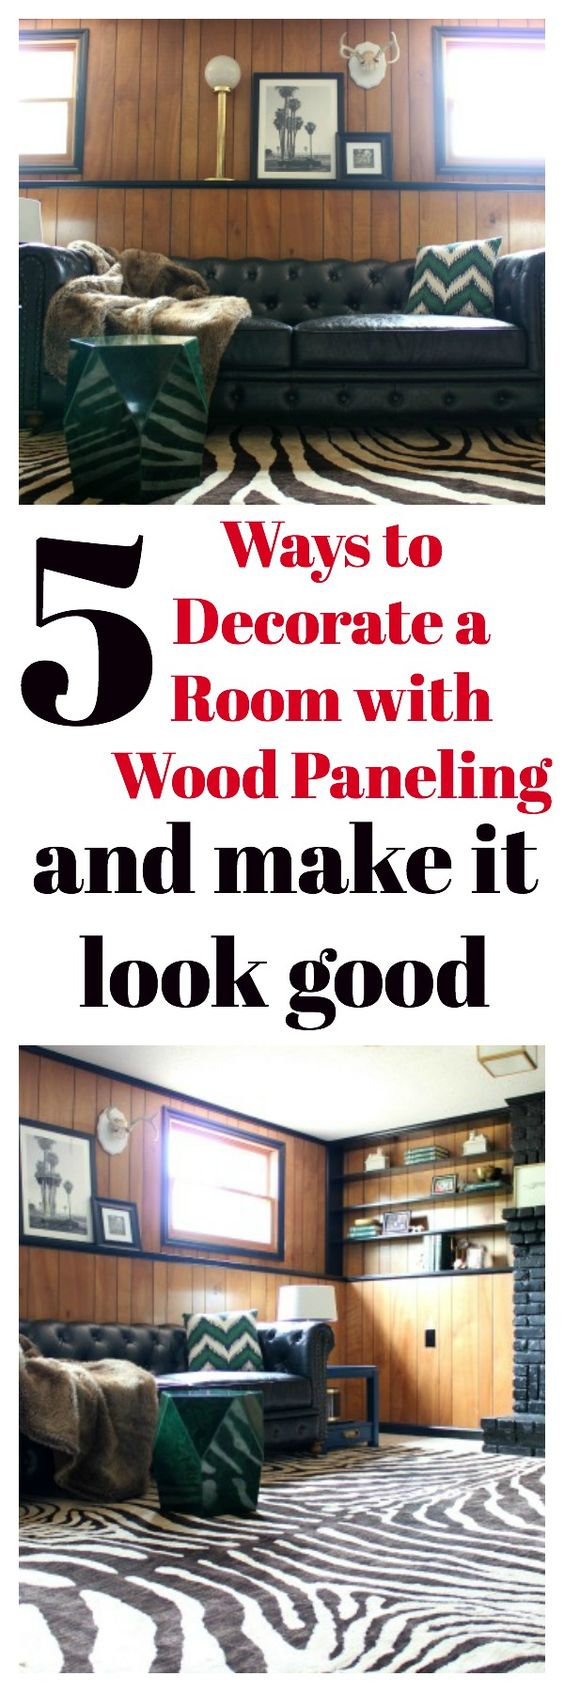 Five ways to decorate a room with wood paneling money Ways to update wood paneling